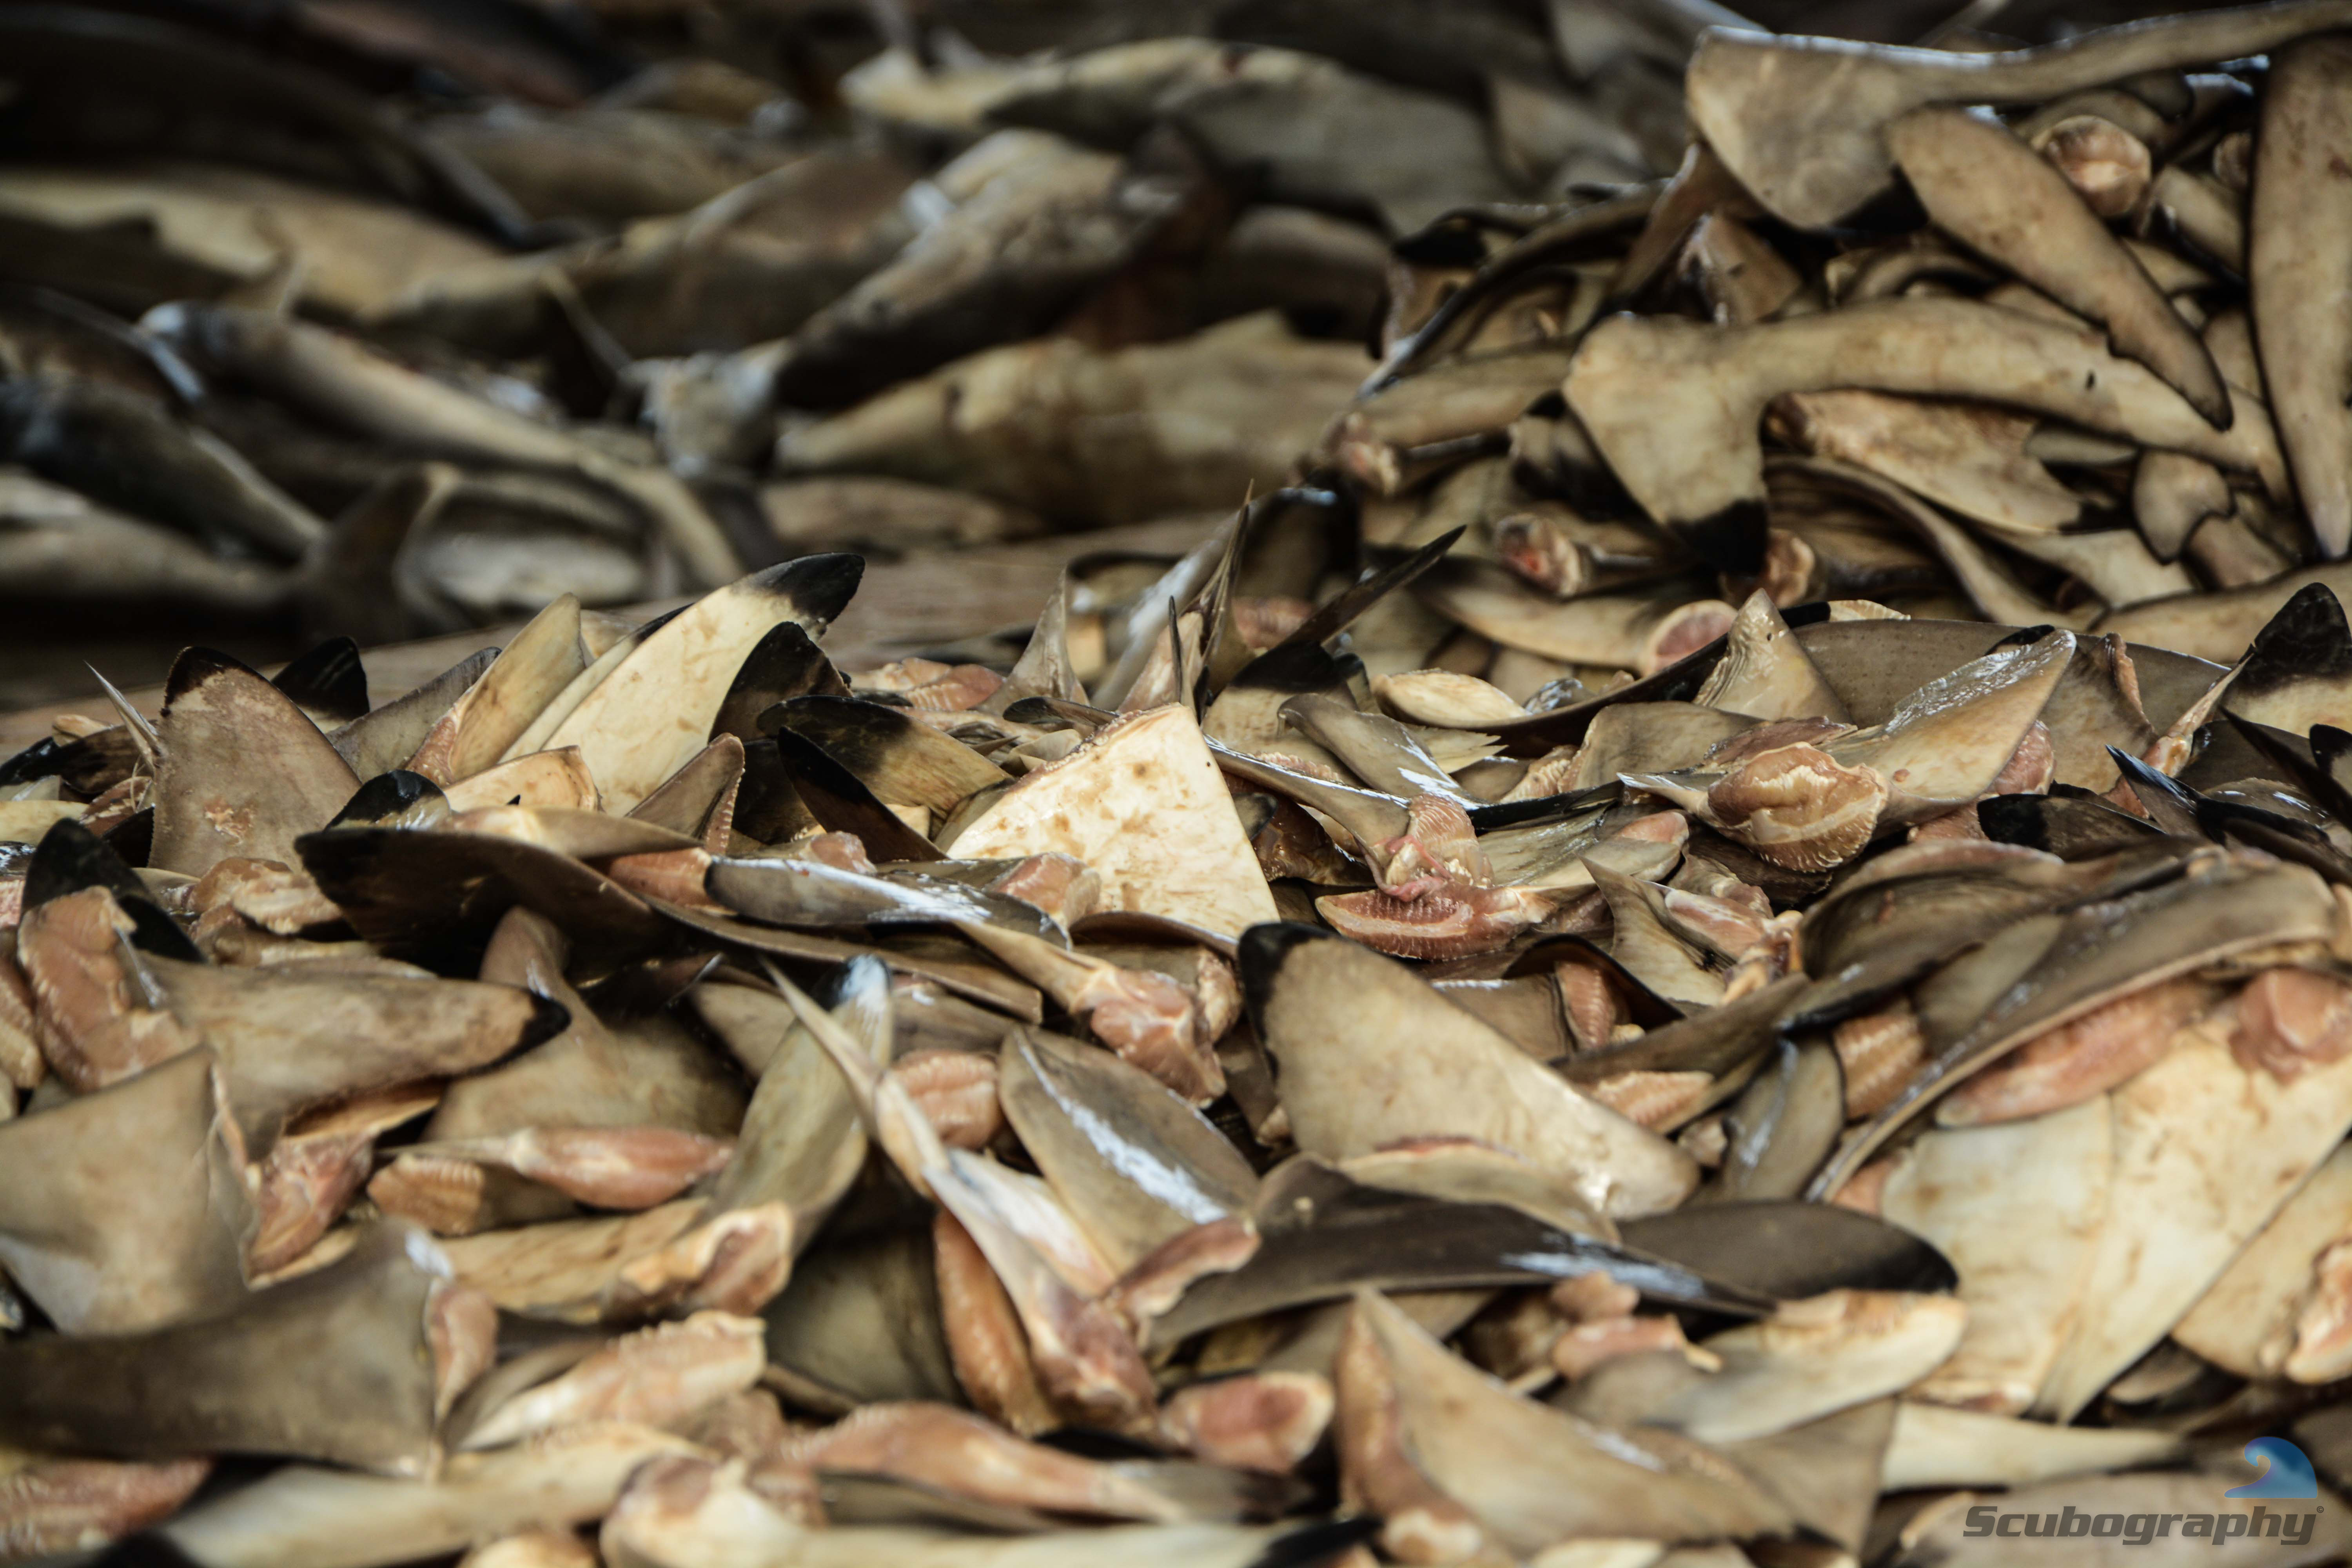 Piles of shark fins